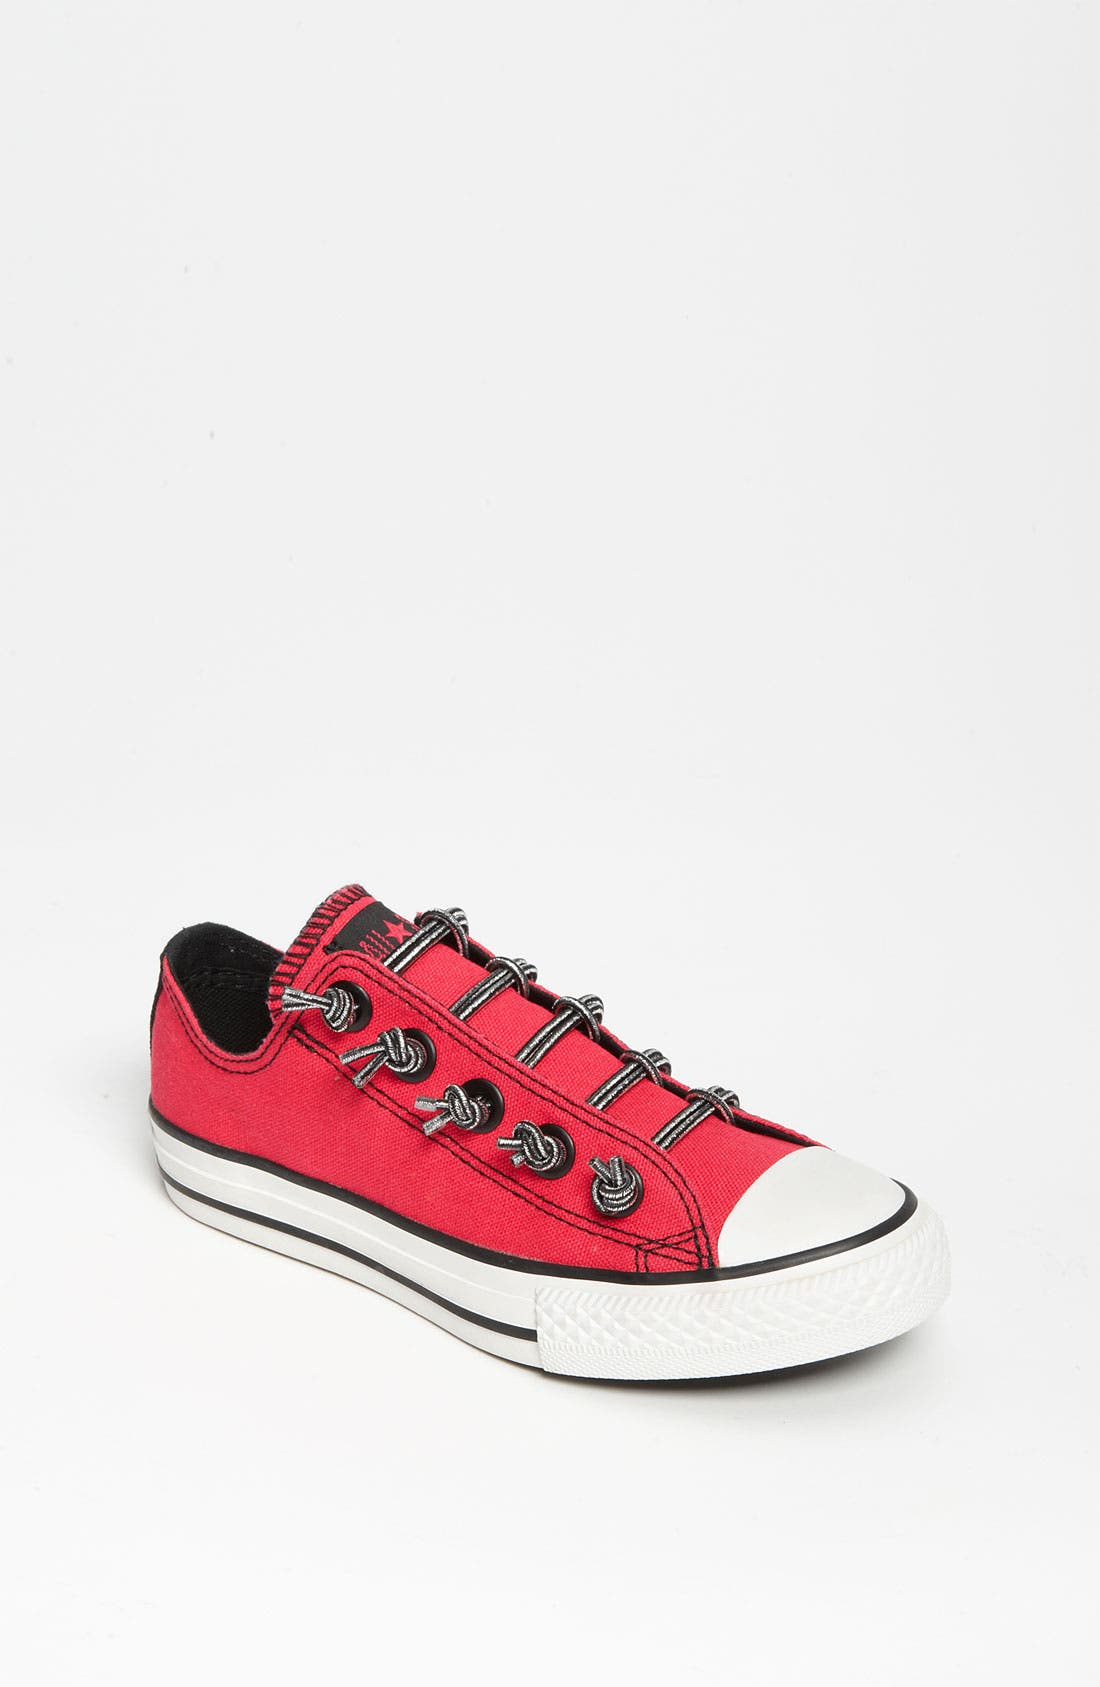 Main Image - Converse 'Loop 2 Knot' Sneaker (Toddler, Little Kid & Big Kid)